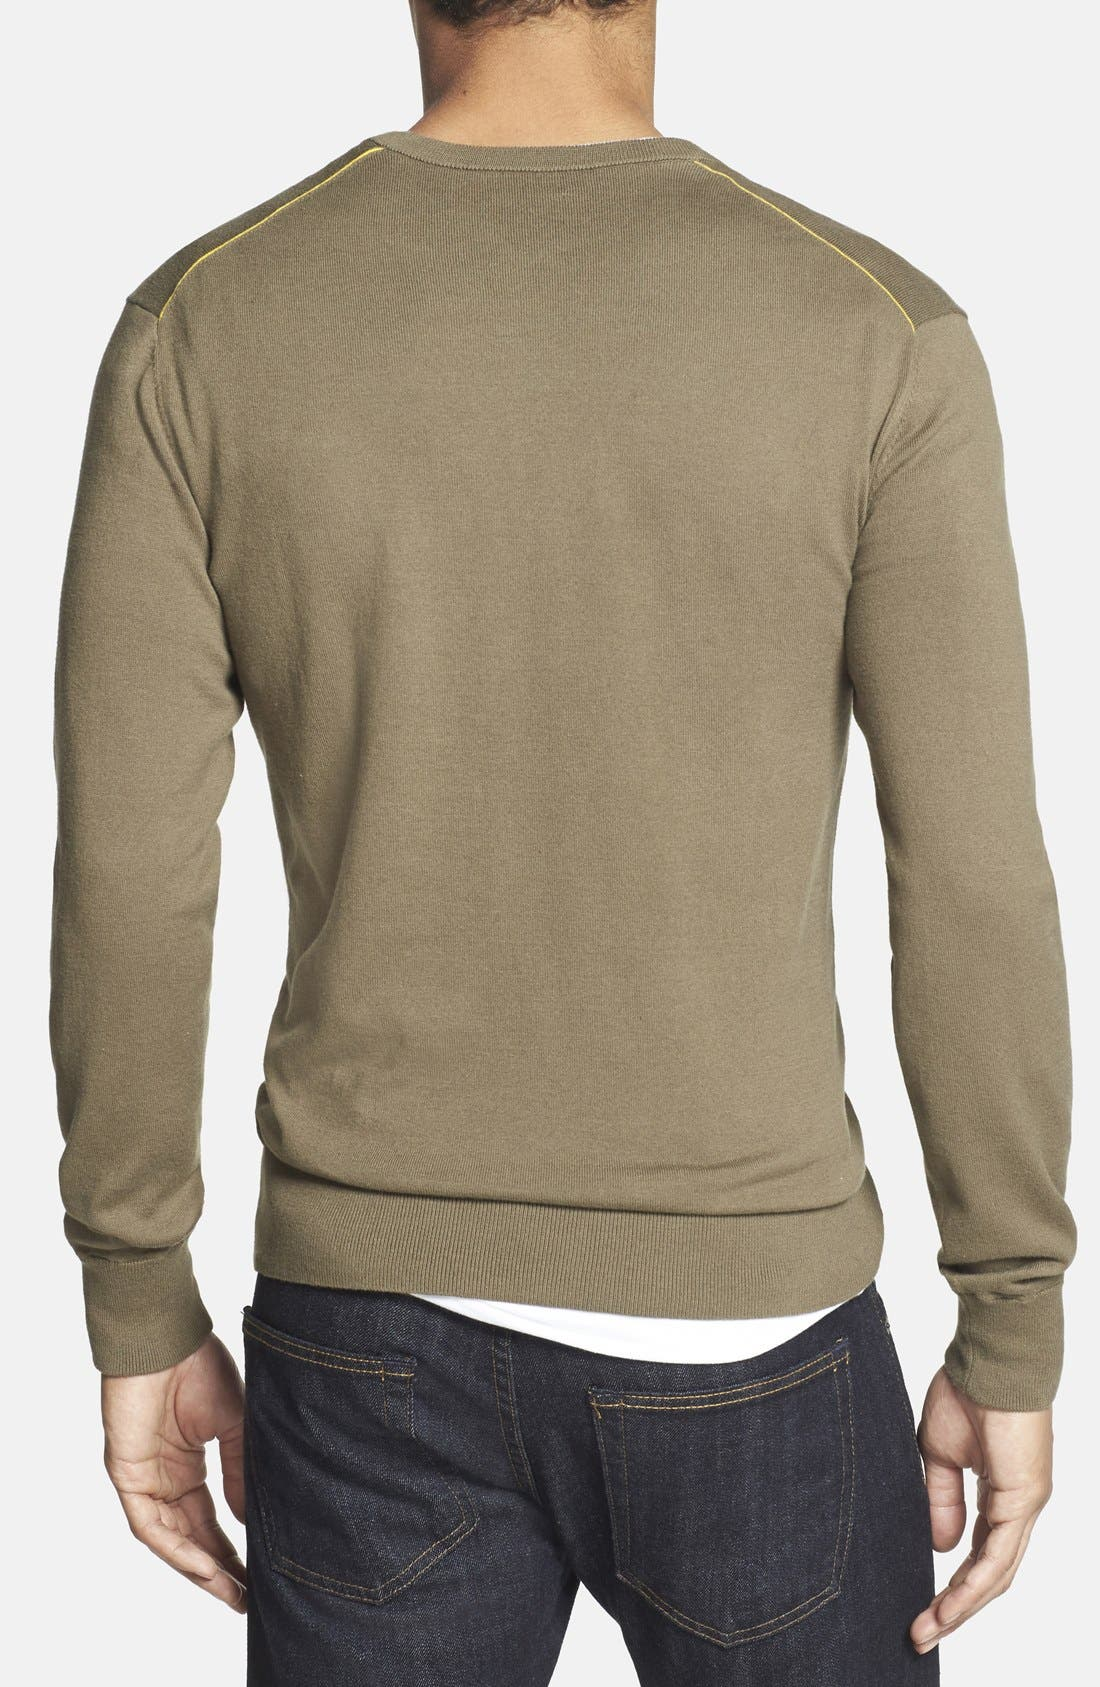 Alternate Image 2  - Victorinox Swiss Army® 'Signature' Tailored Fit V-Neck Sweater (Online Only)